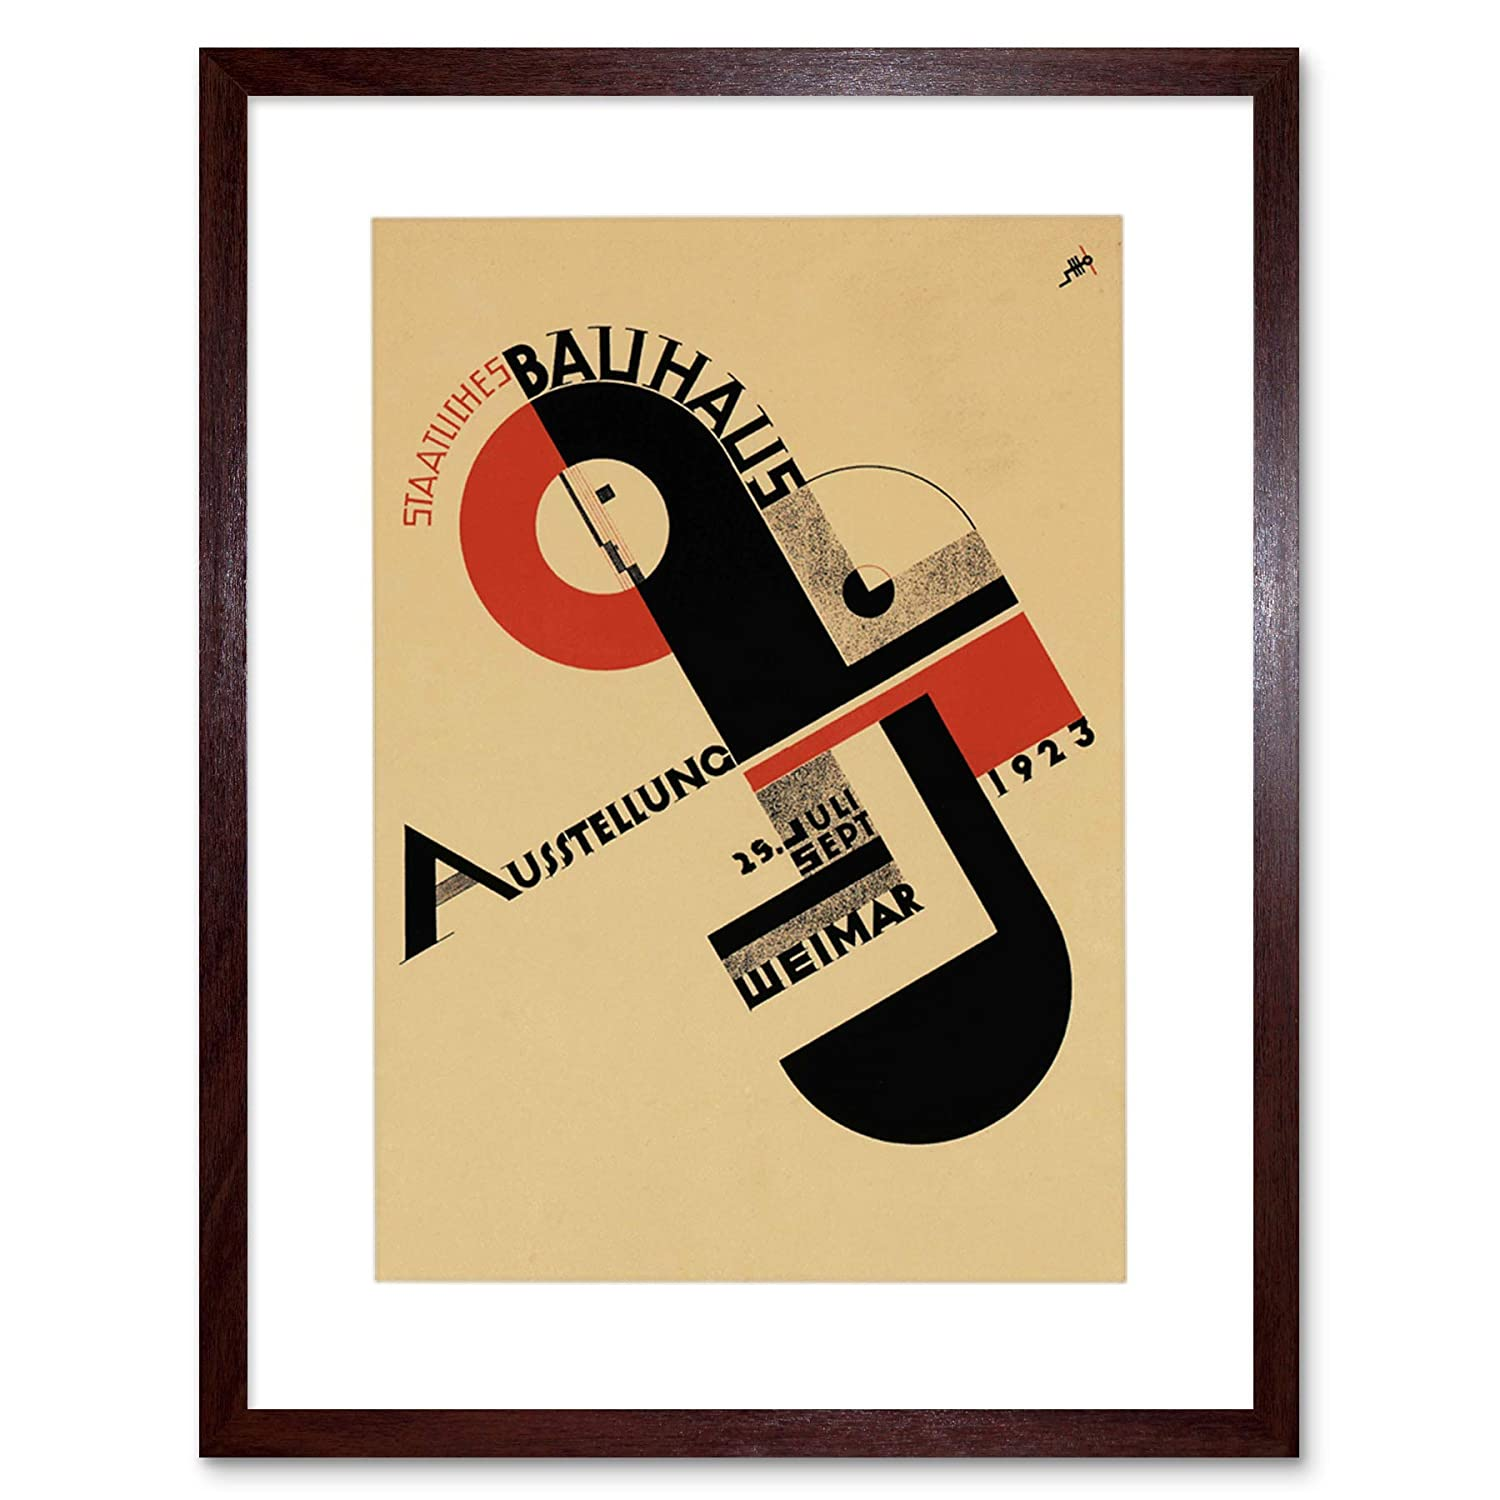 Bauhaus Weimar ICON Vintage AD Frame Art Print Picture F12X319 The Art Stop